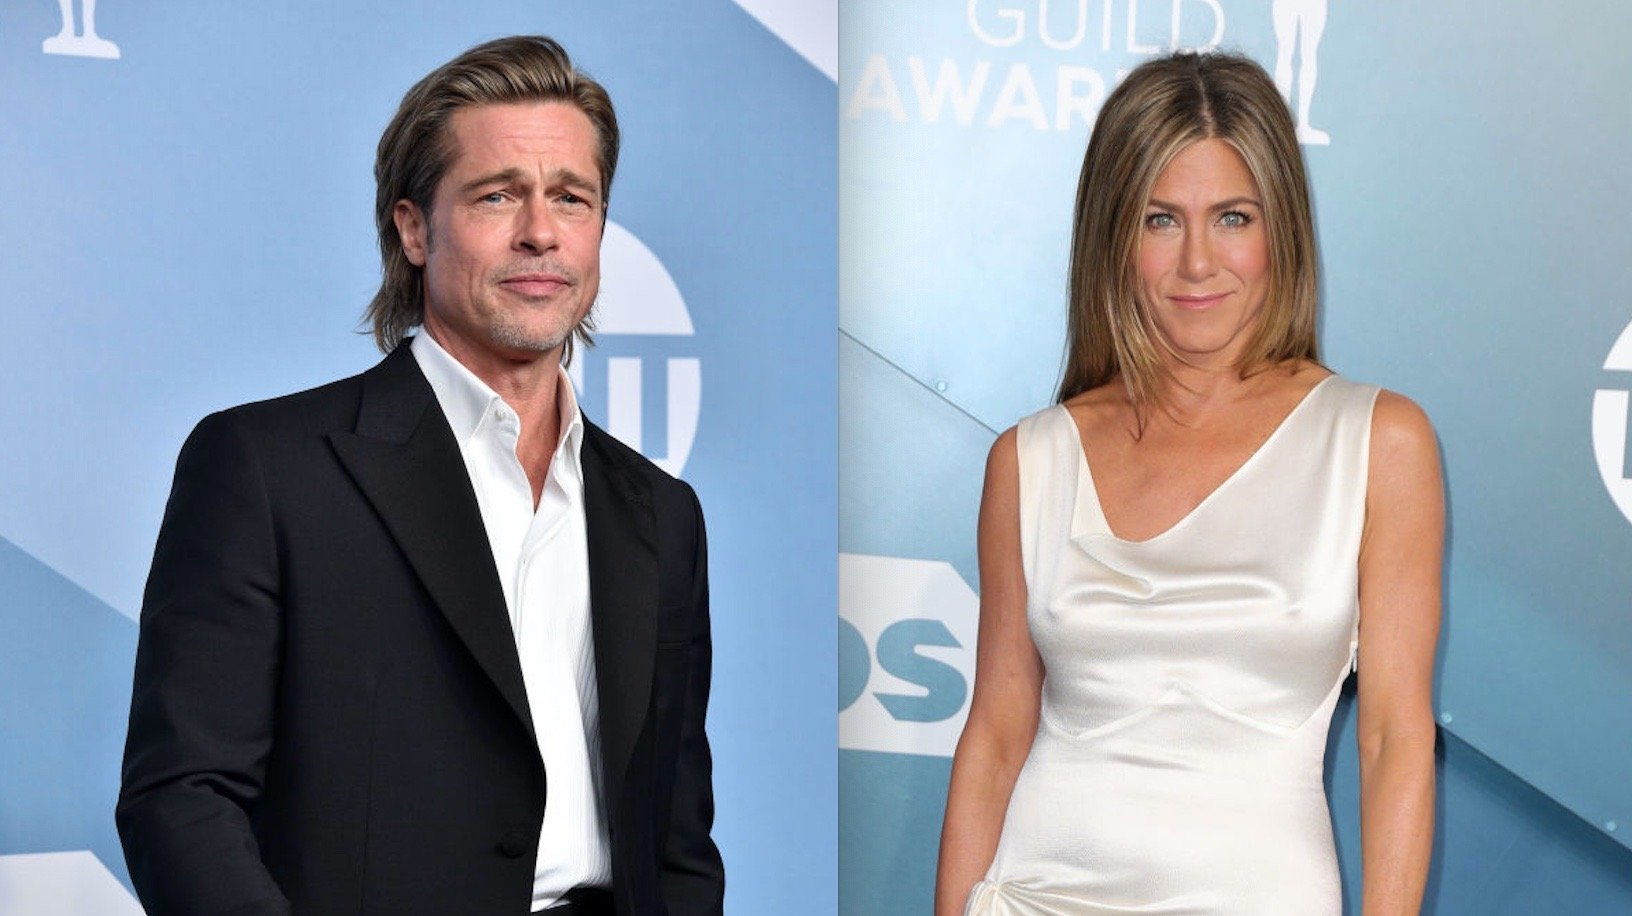 jennifer-aniston-says-brad-pitt-is-one-of-her-favorite-friends-guest-stars-and-fans-freak-out